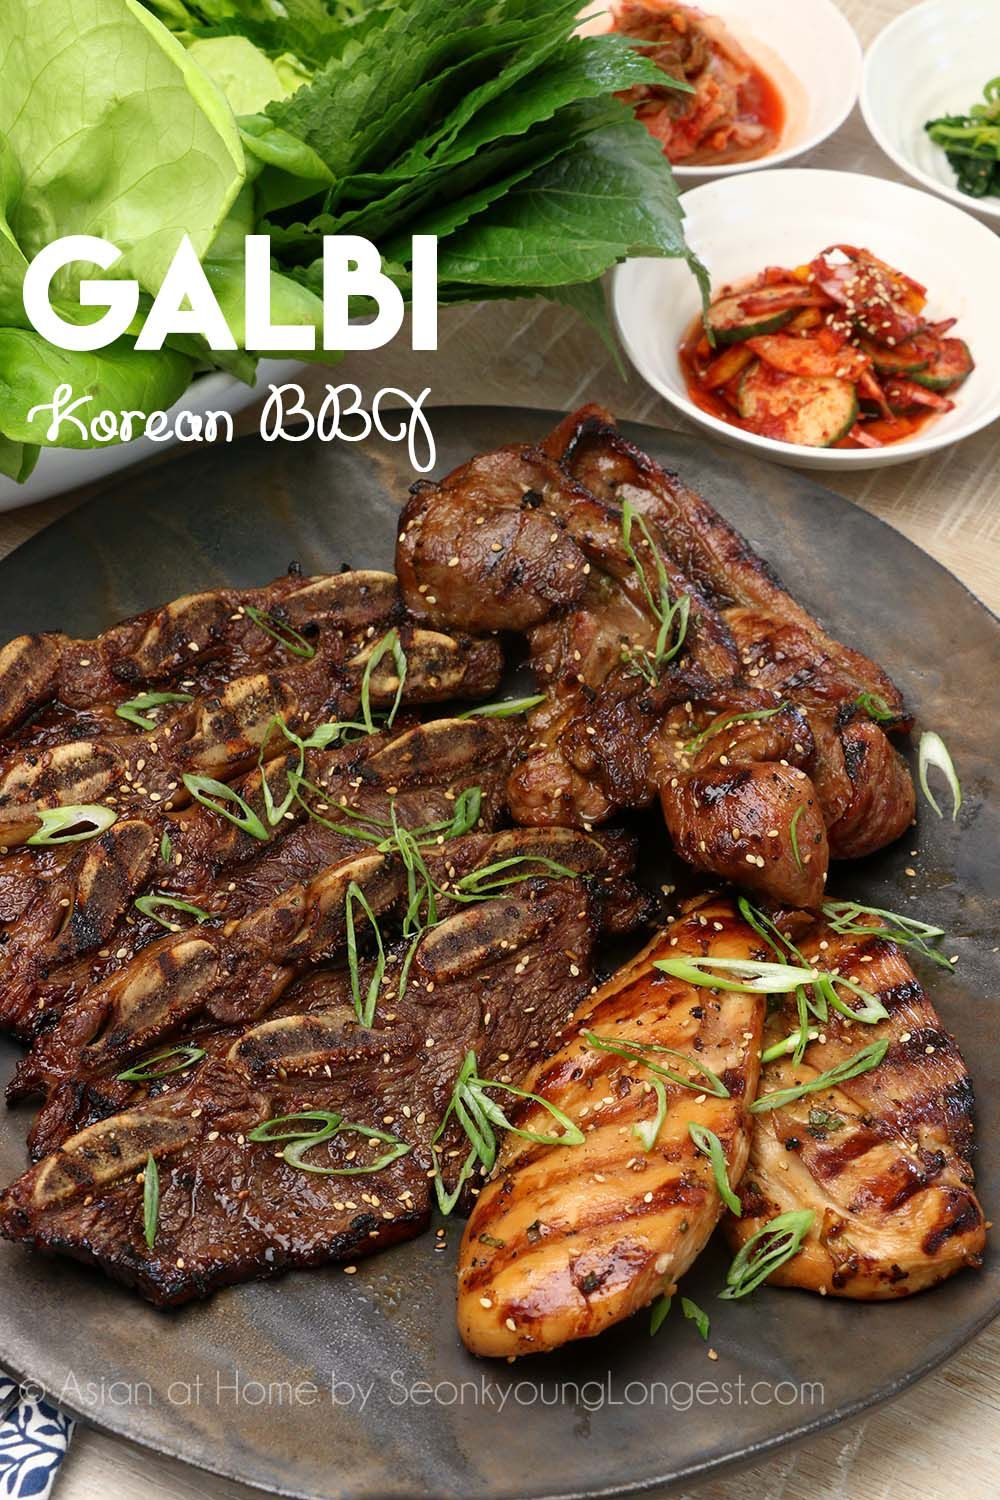 Galbi Korean Marinated Rib Bbq Recipe Video Seonkyoung Longest Recipe Bbq Recipes Pork Ribs Recipes